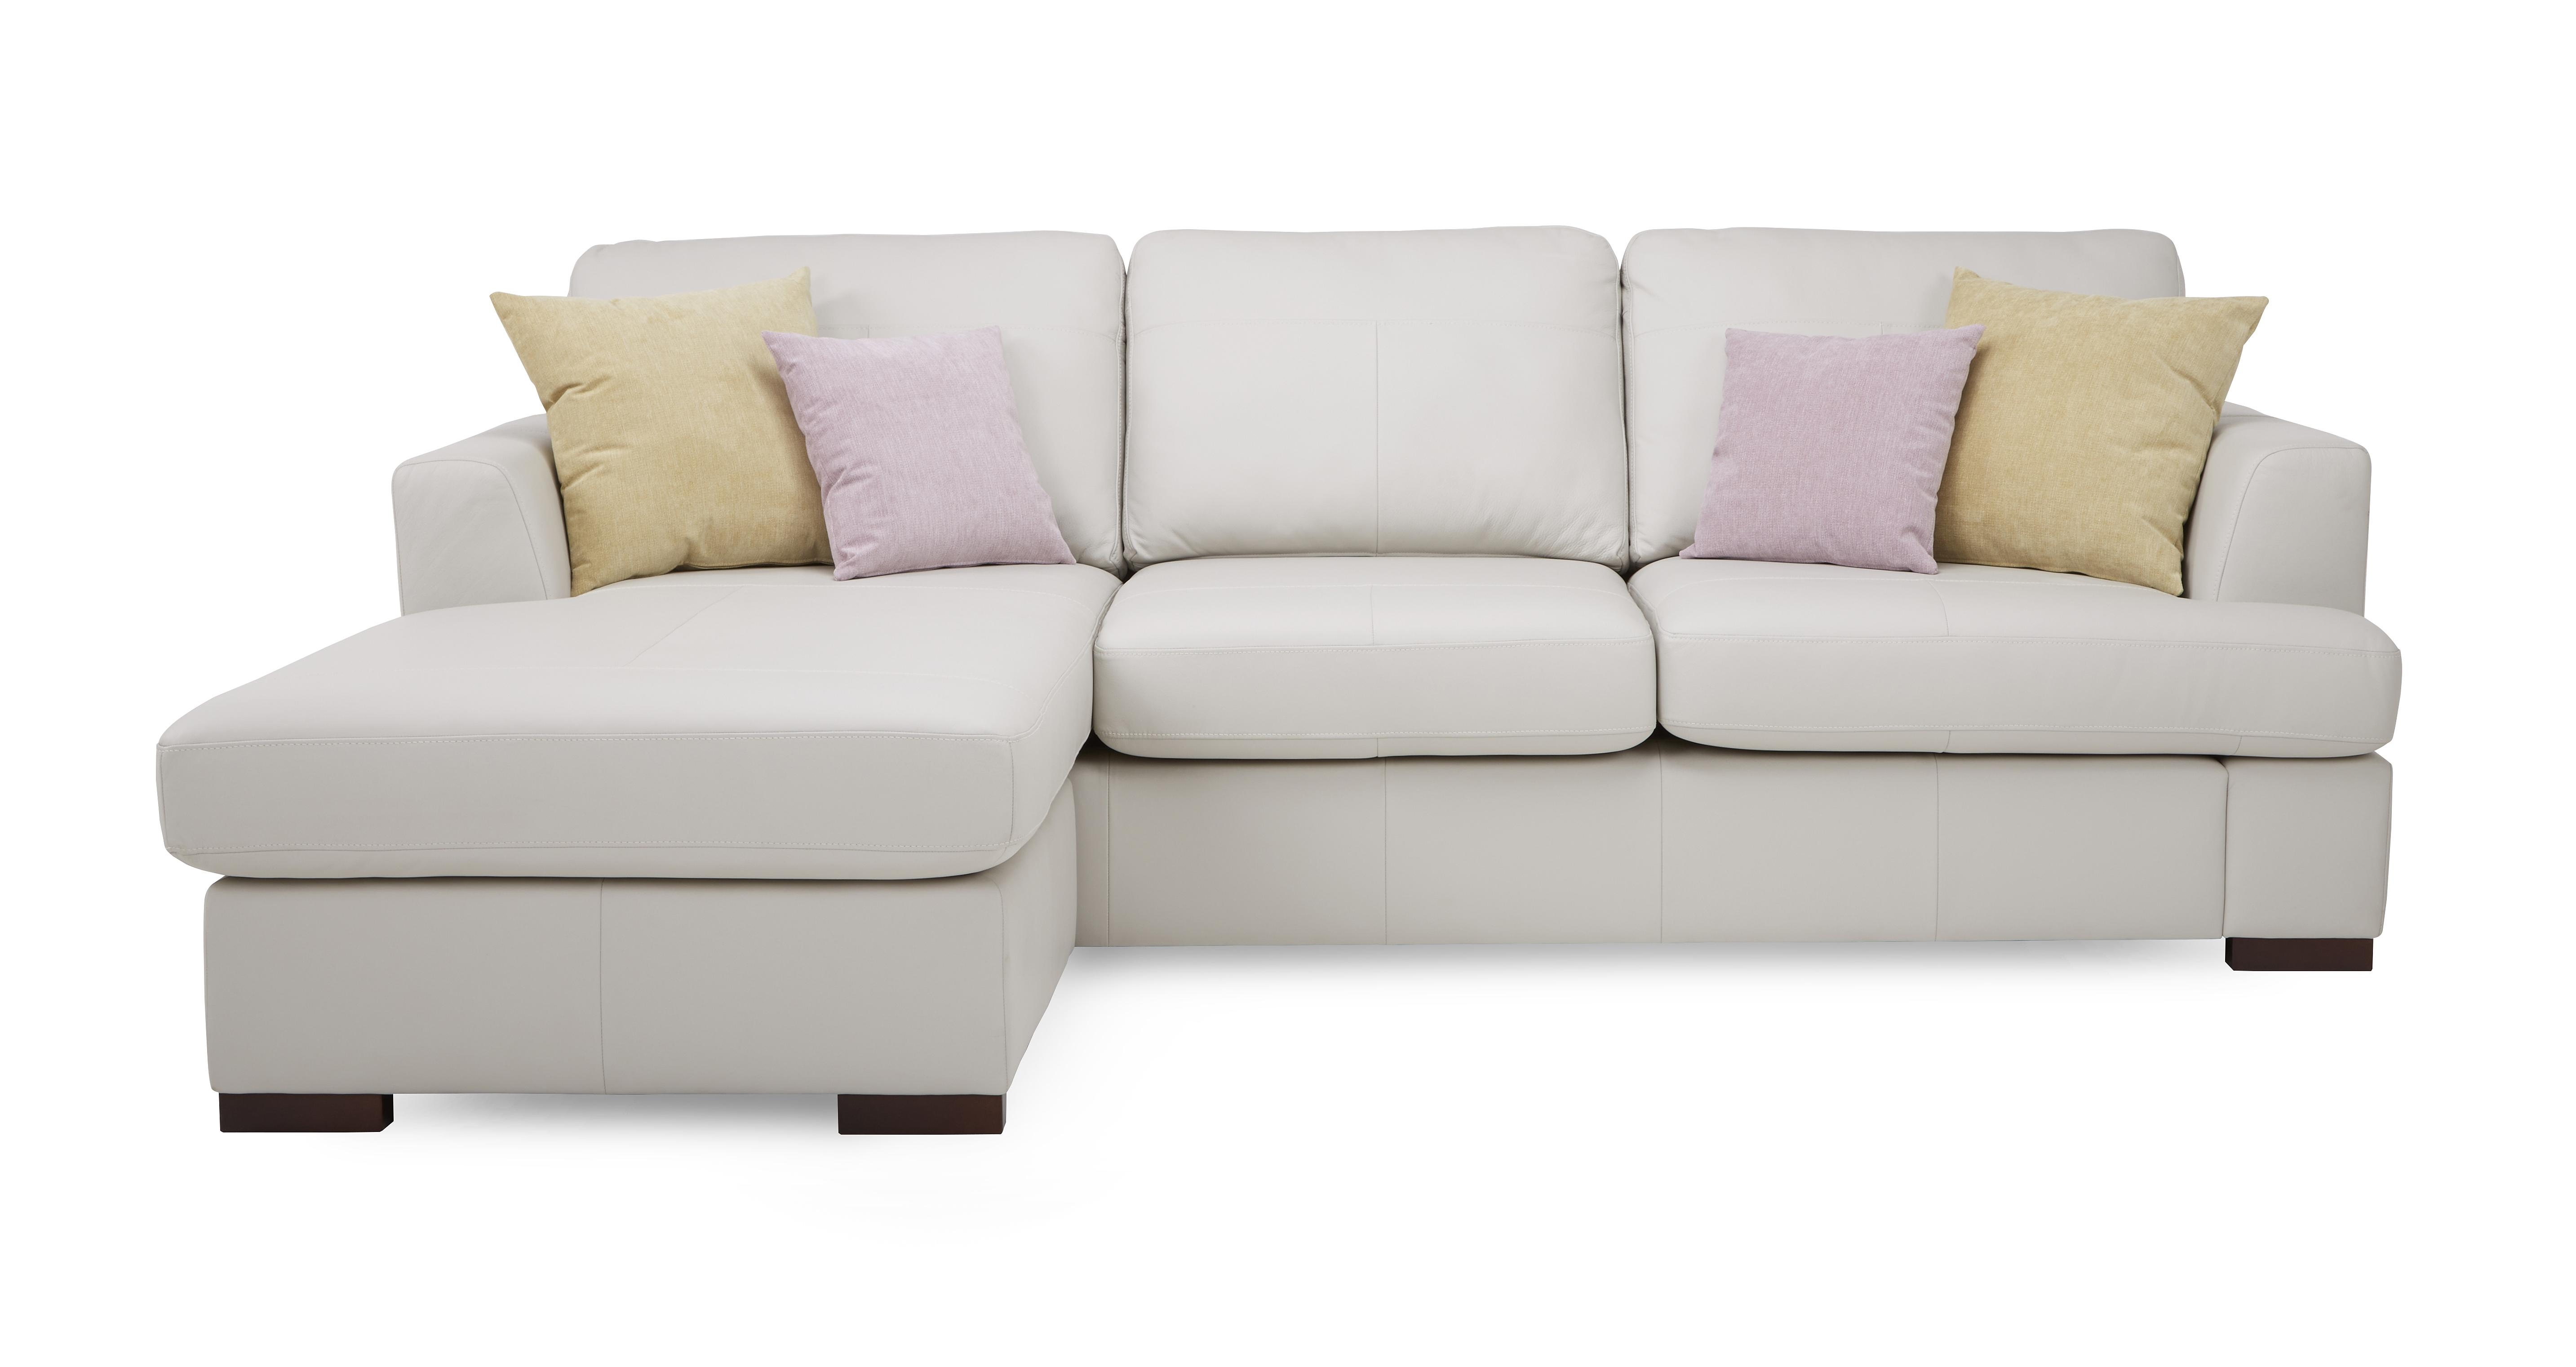 sc 1 st  DFS : left hand chaise - Sectionals, Sofas & Couches